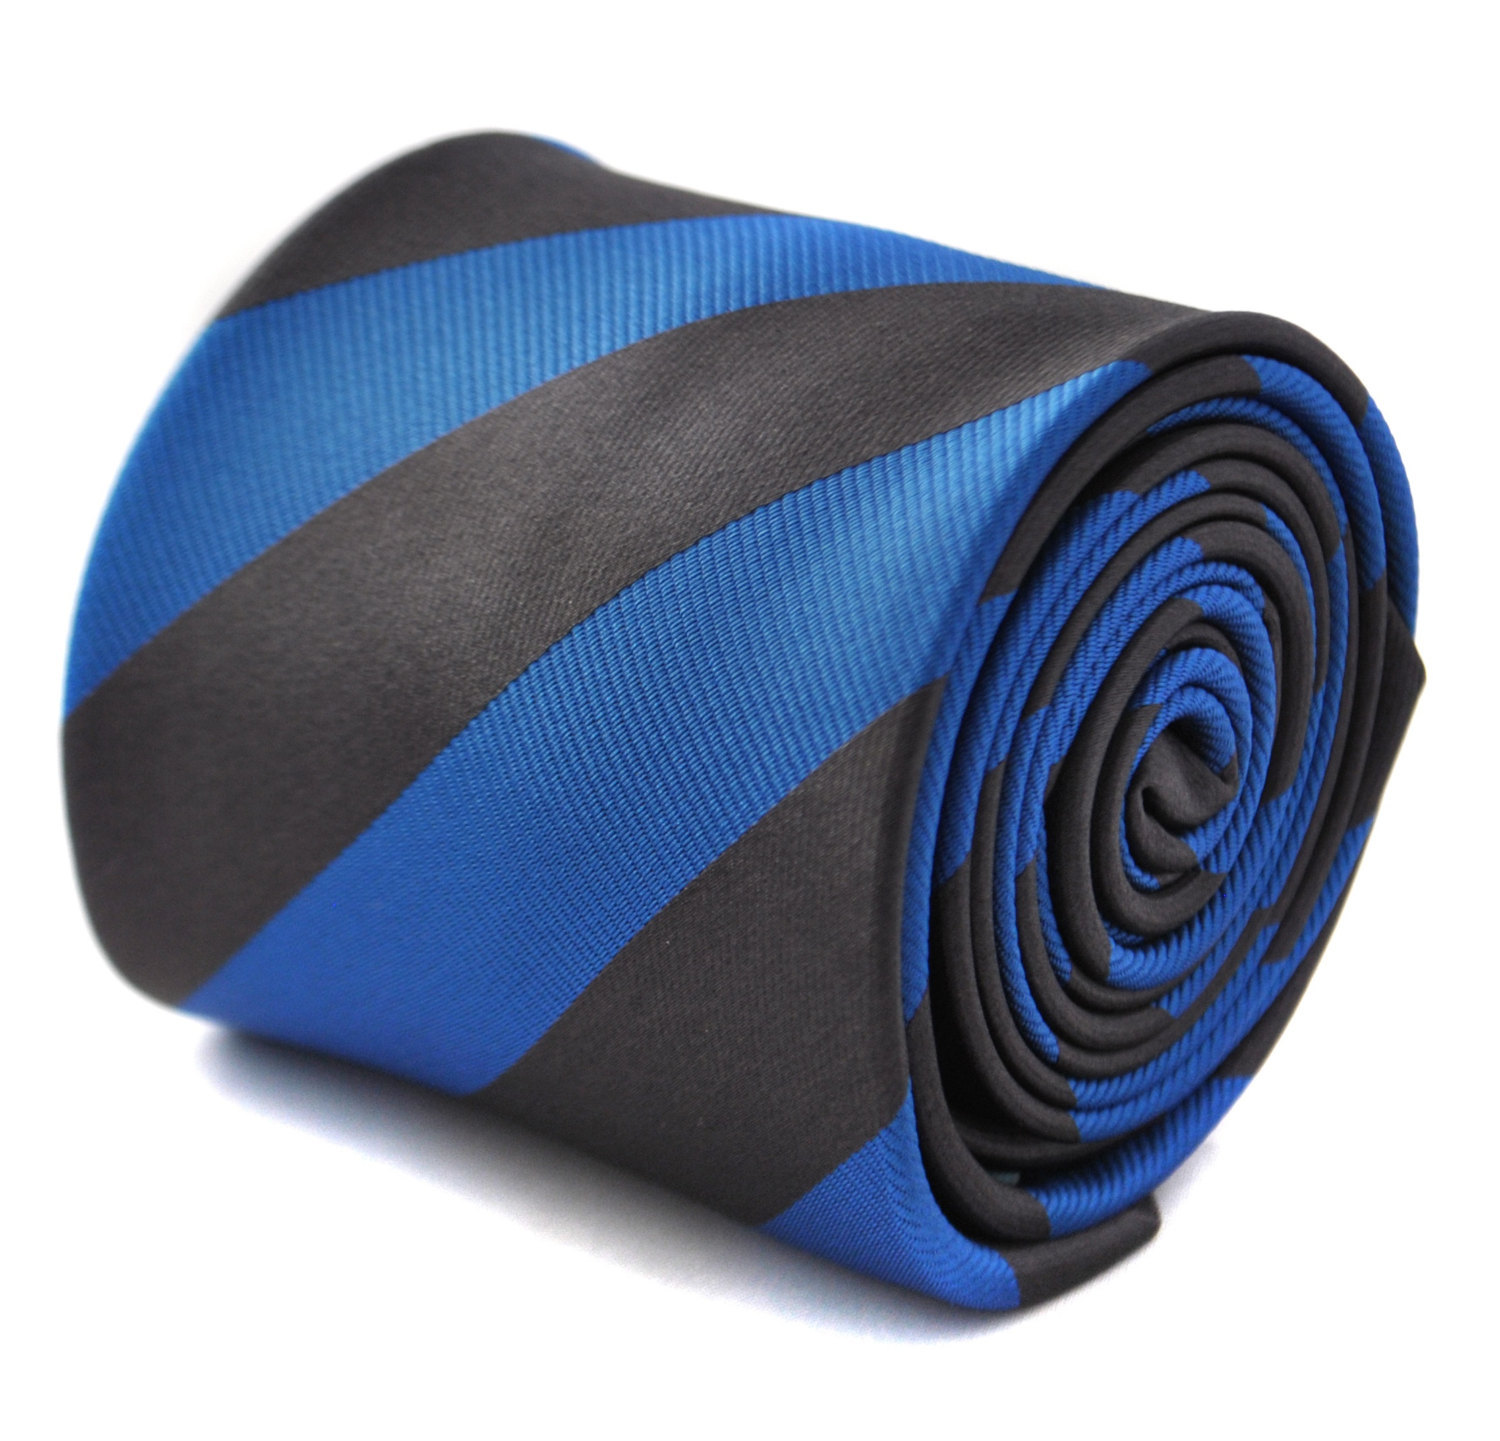 Dark grey and royal blue barber striped tie with signature floral design to the